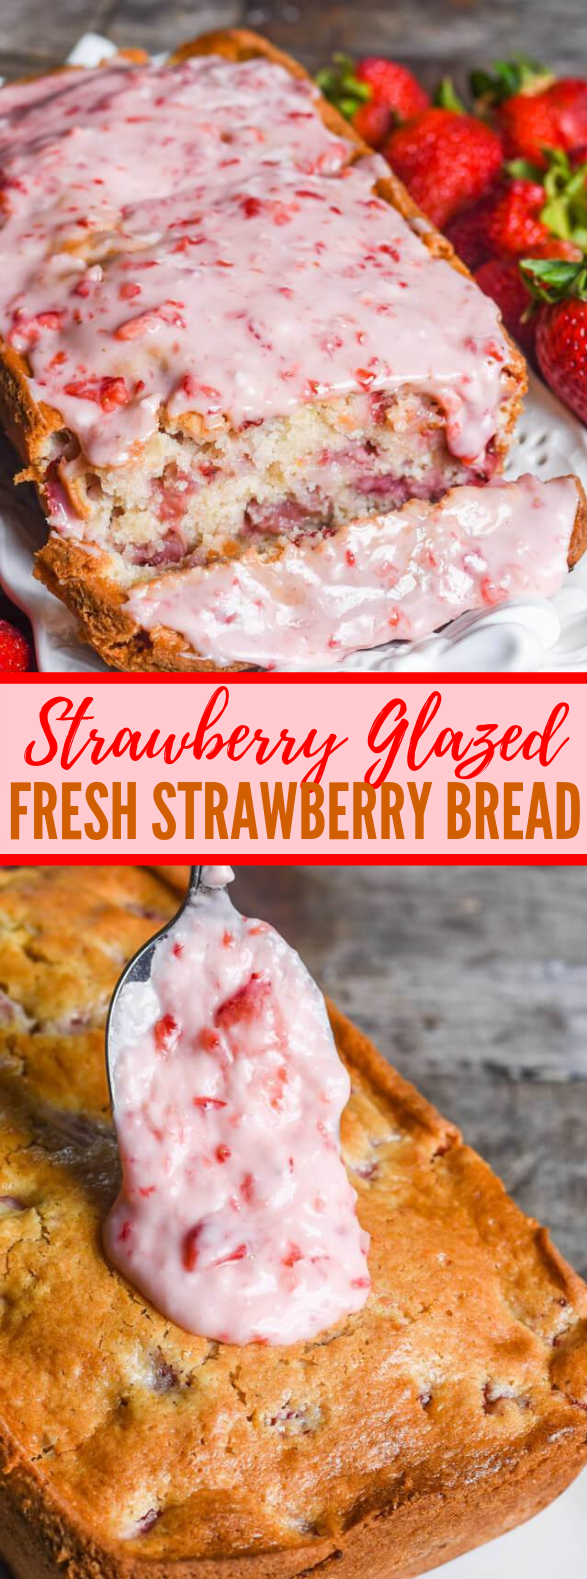 STRAWBERRY BREAD #dessert #friutbread